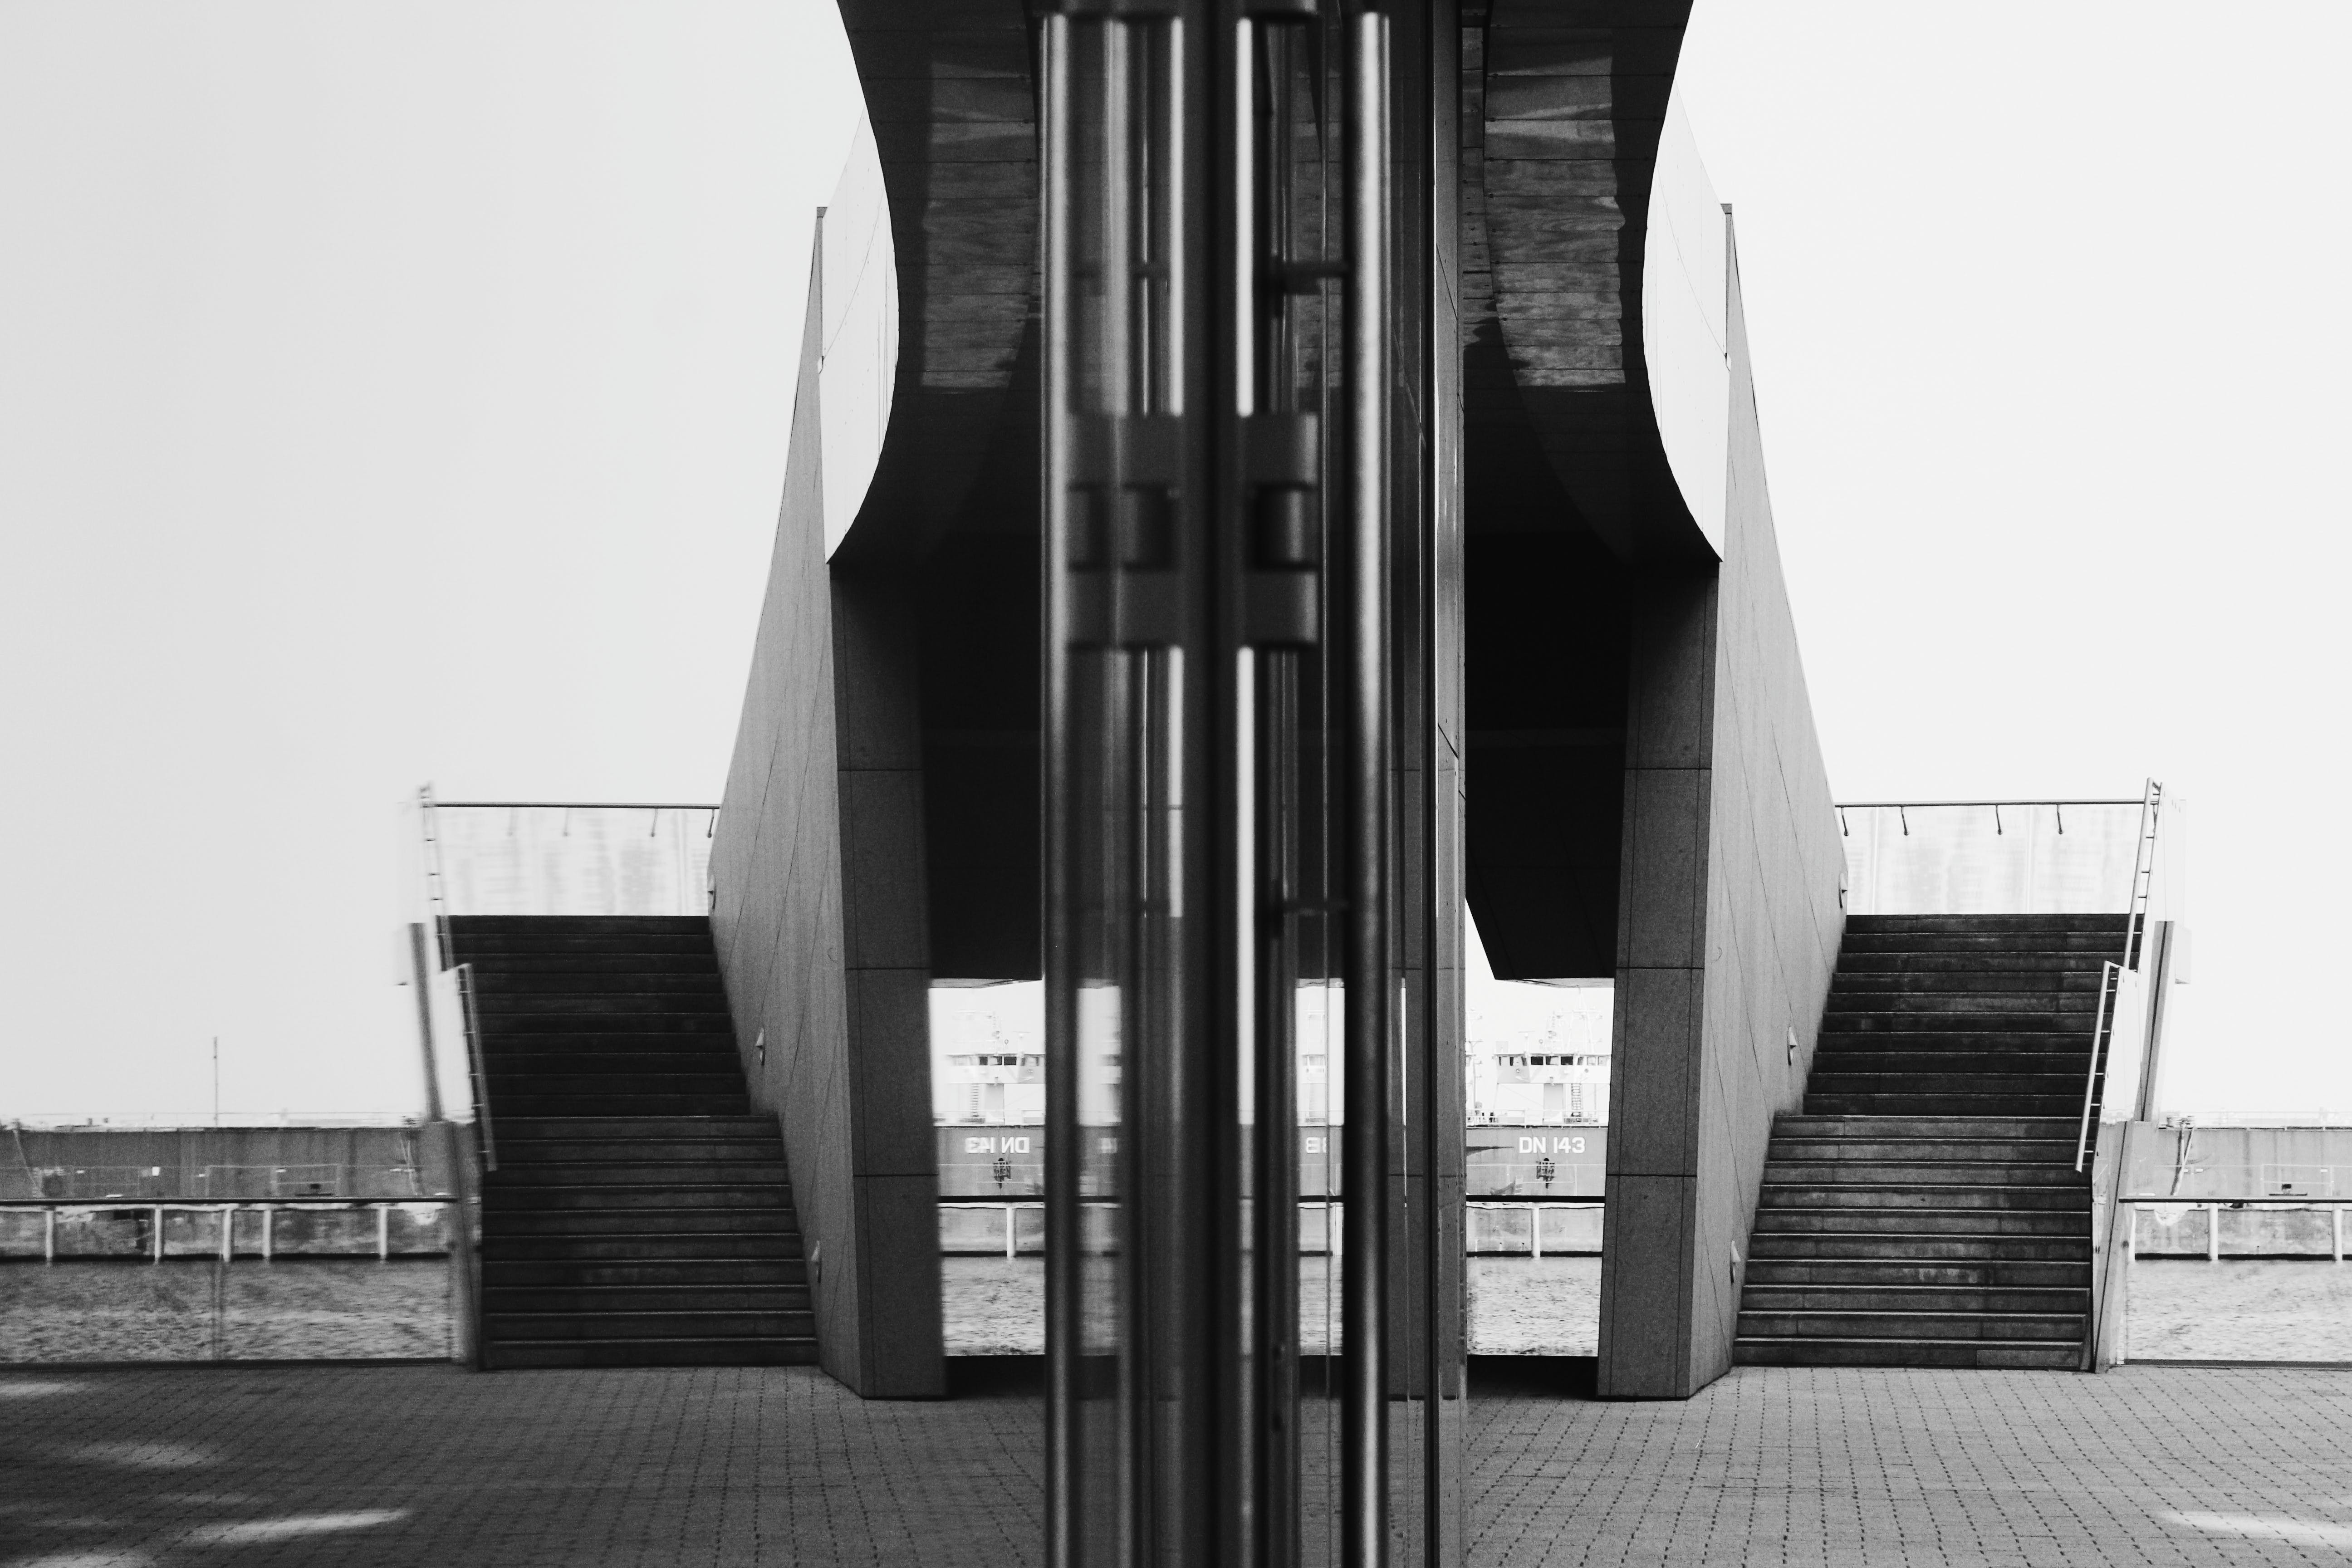 Grayscale Photo of Building Taken